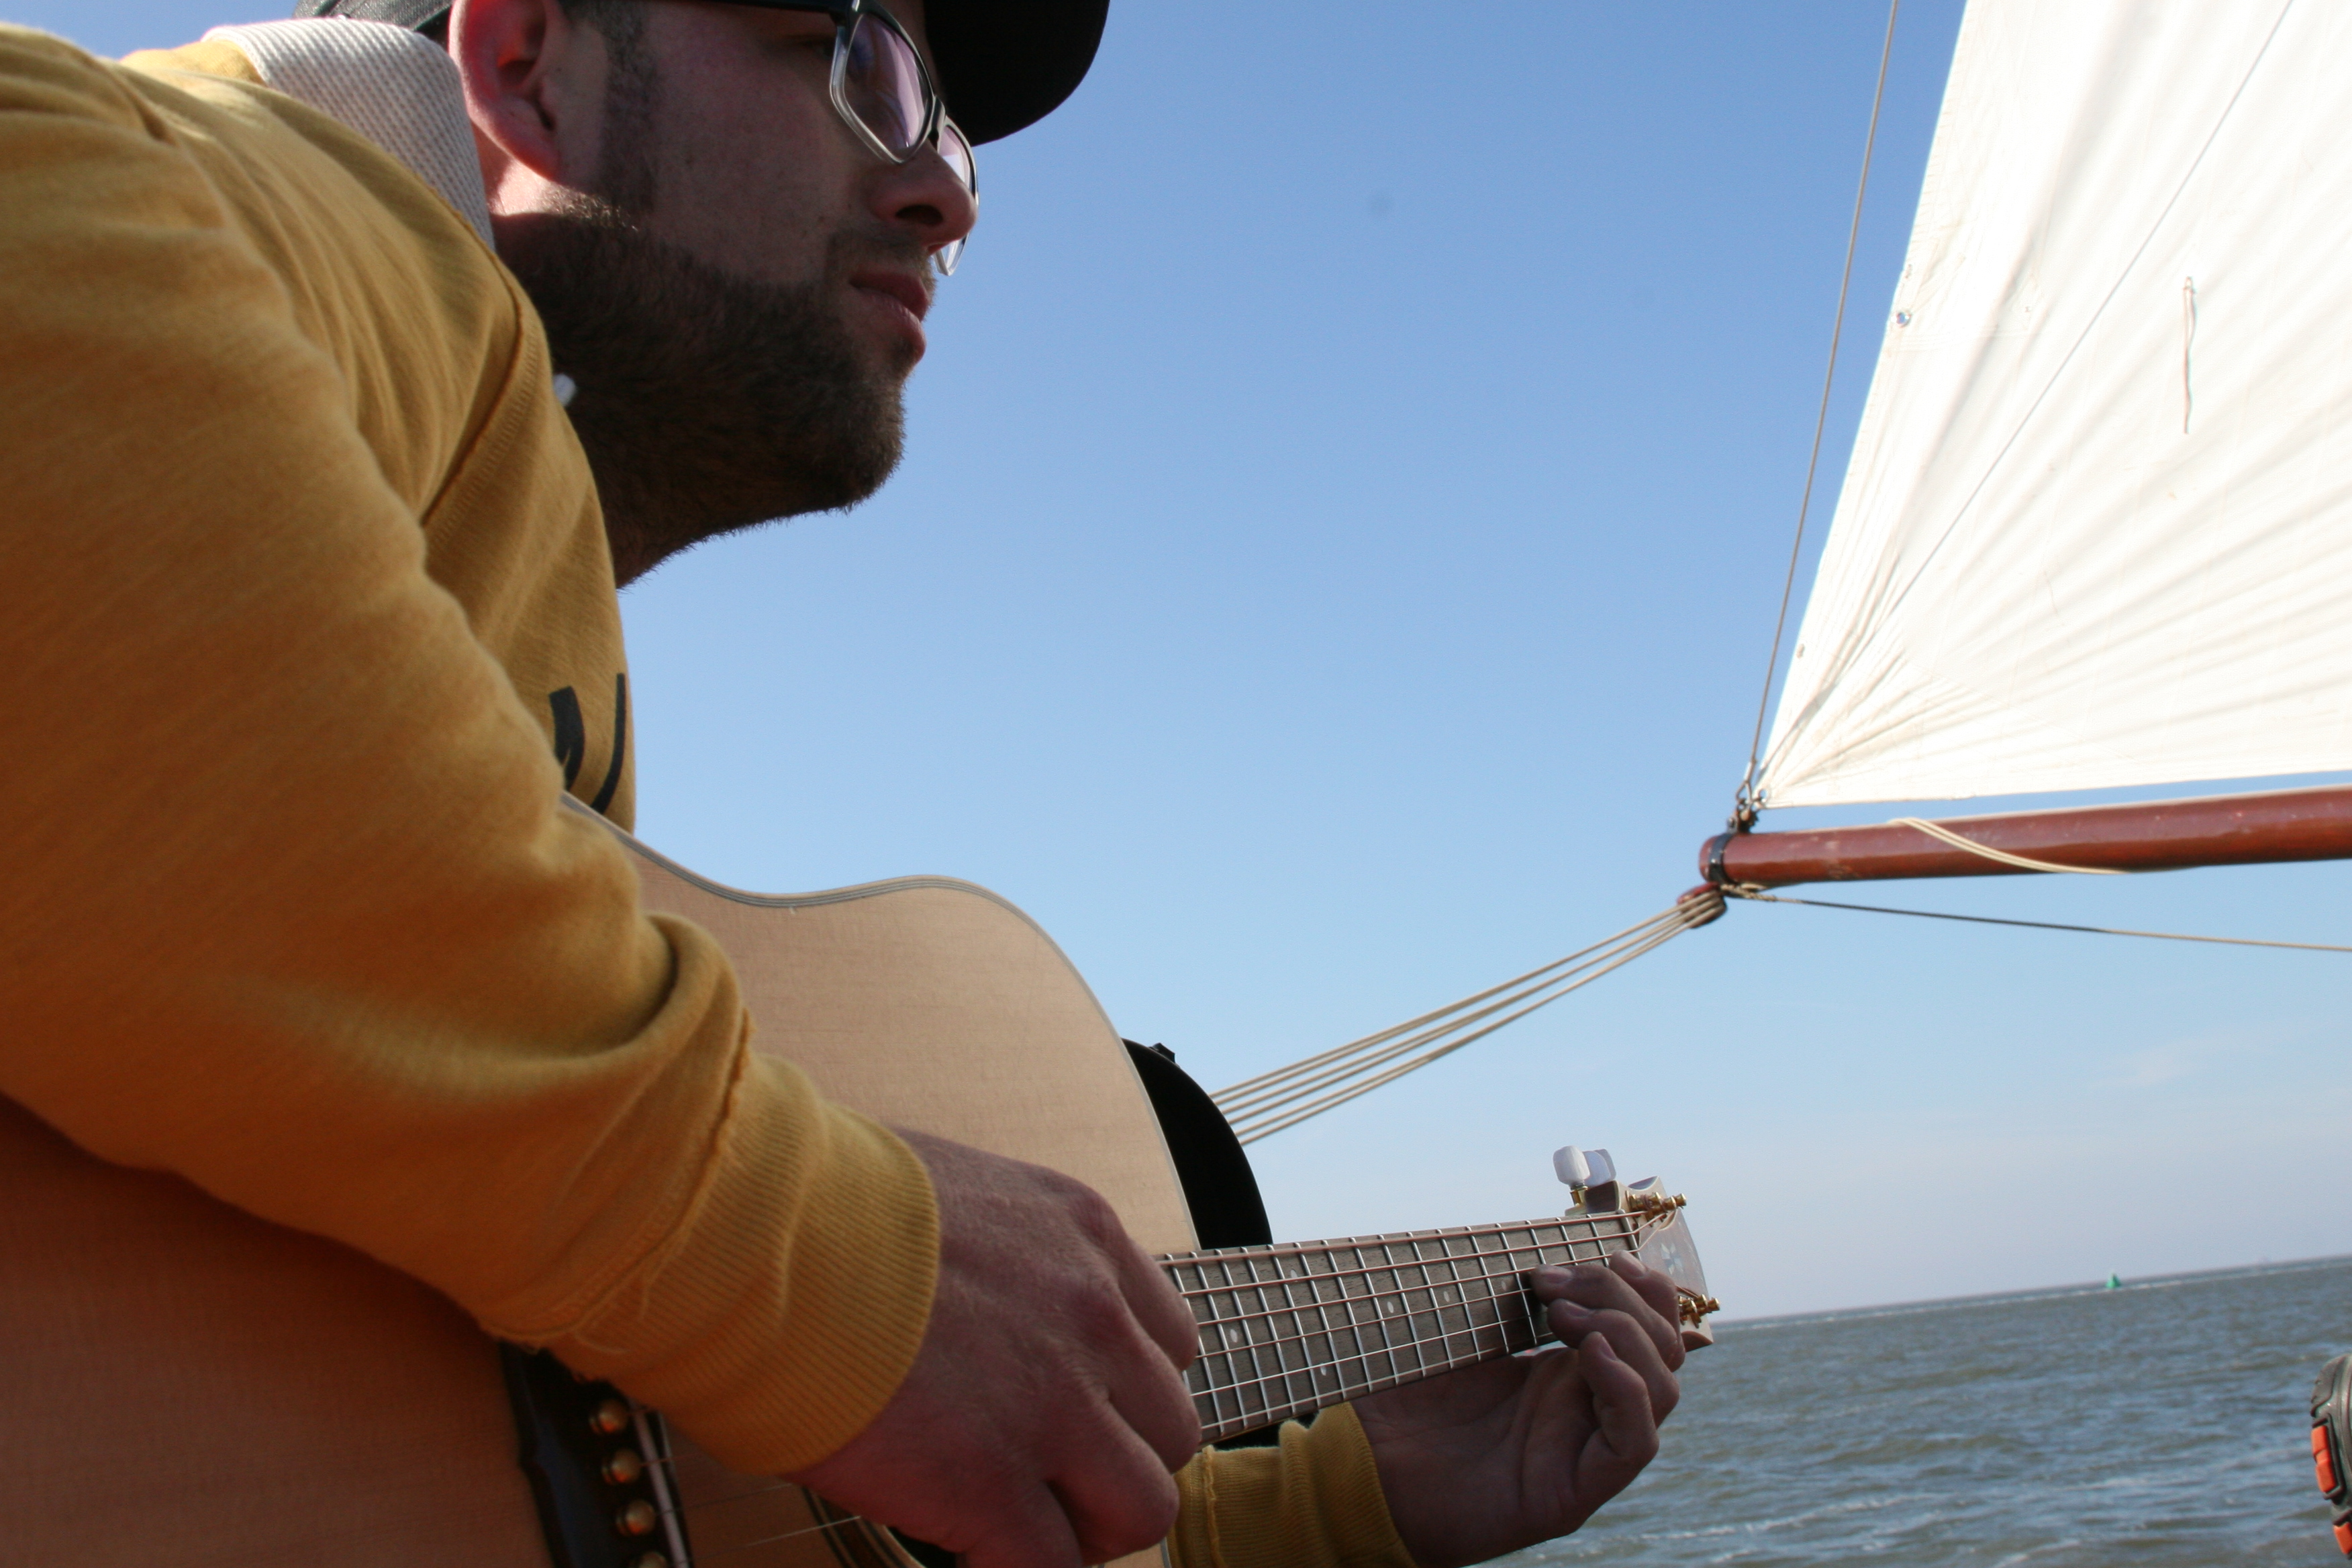 Blues musician on his way to Terschelling on an authentic sailing ship